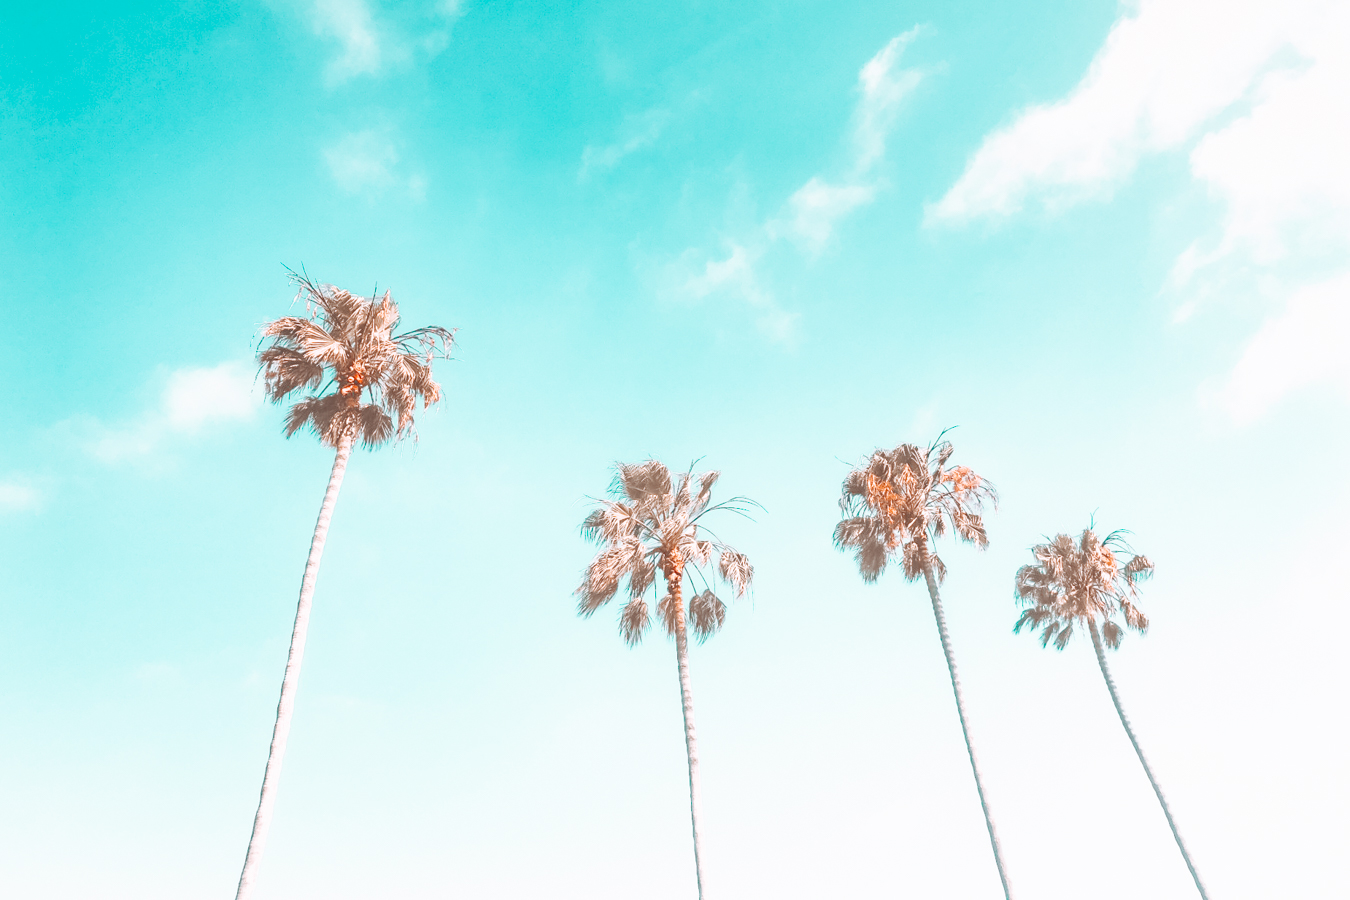 Four palm trees and a blue sky in San Diego